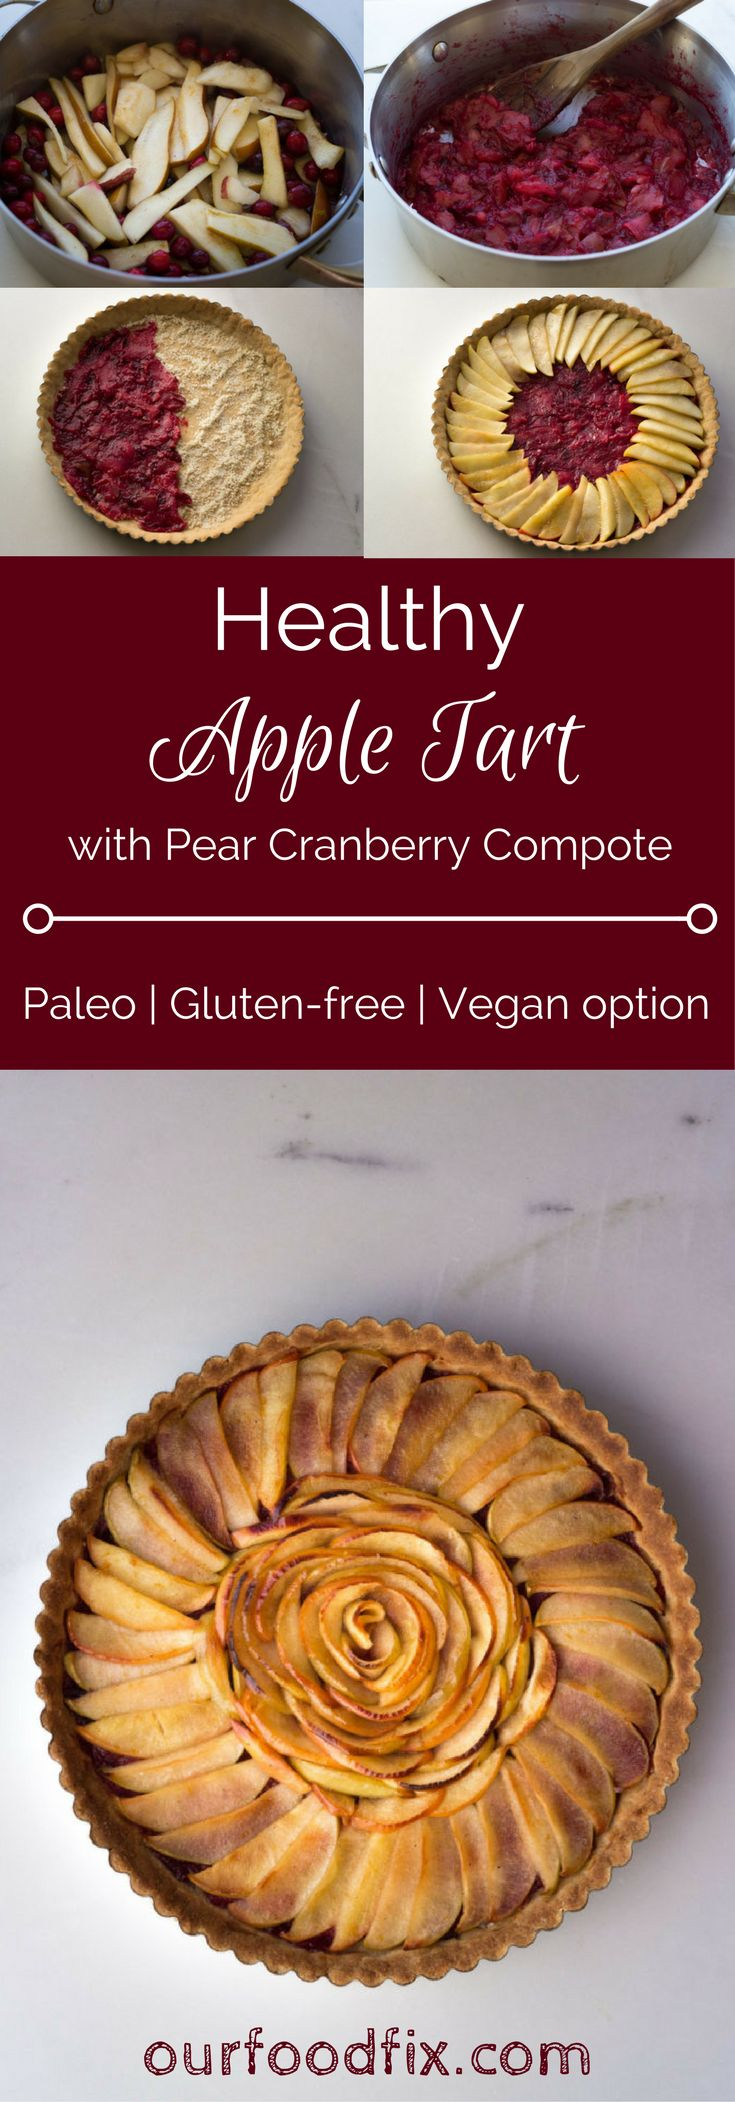 Part traditional French tart, part rustic interpretation, this healthy dessert is full of holiday flavor and color. Paleo Recipes   Gluten free recipes   Dairy free recipes   Holiday recipes   Holiday desserts   Christmas recipes   Christmas desserts   Party food   Thanksgiving desserts   Dessert recipes   Treats and sweets   Simple recipes   Pies and tarts   Pie recipes   Apple tart   Vegan recipes  Vegan desserts   Vegan treats